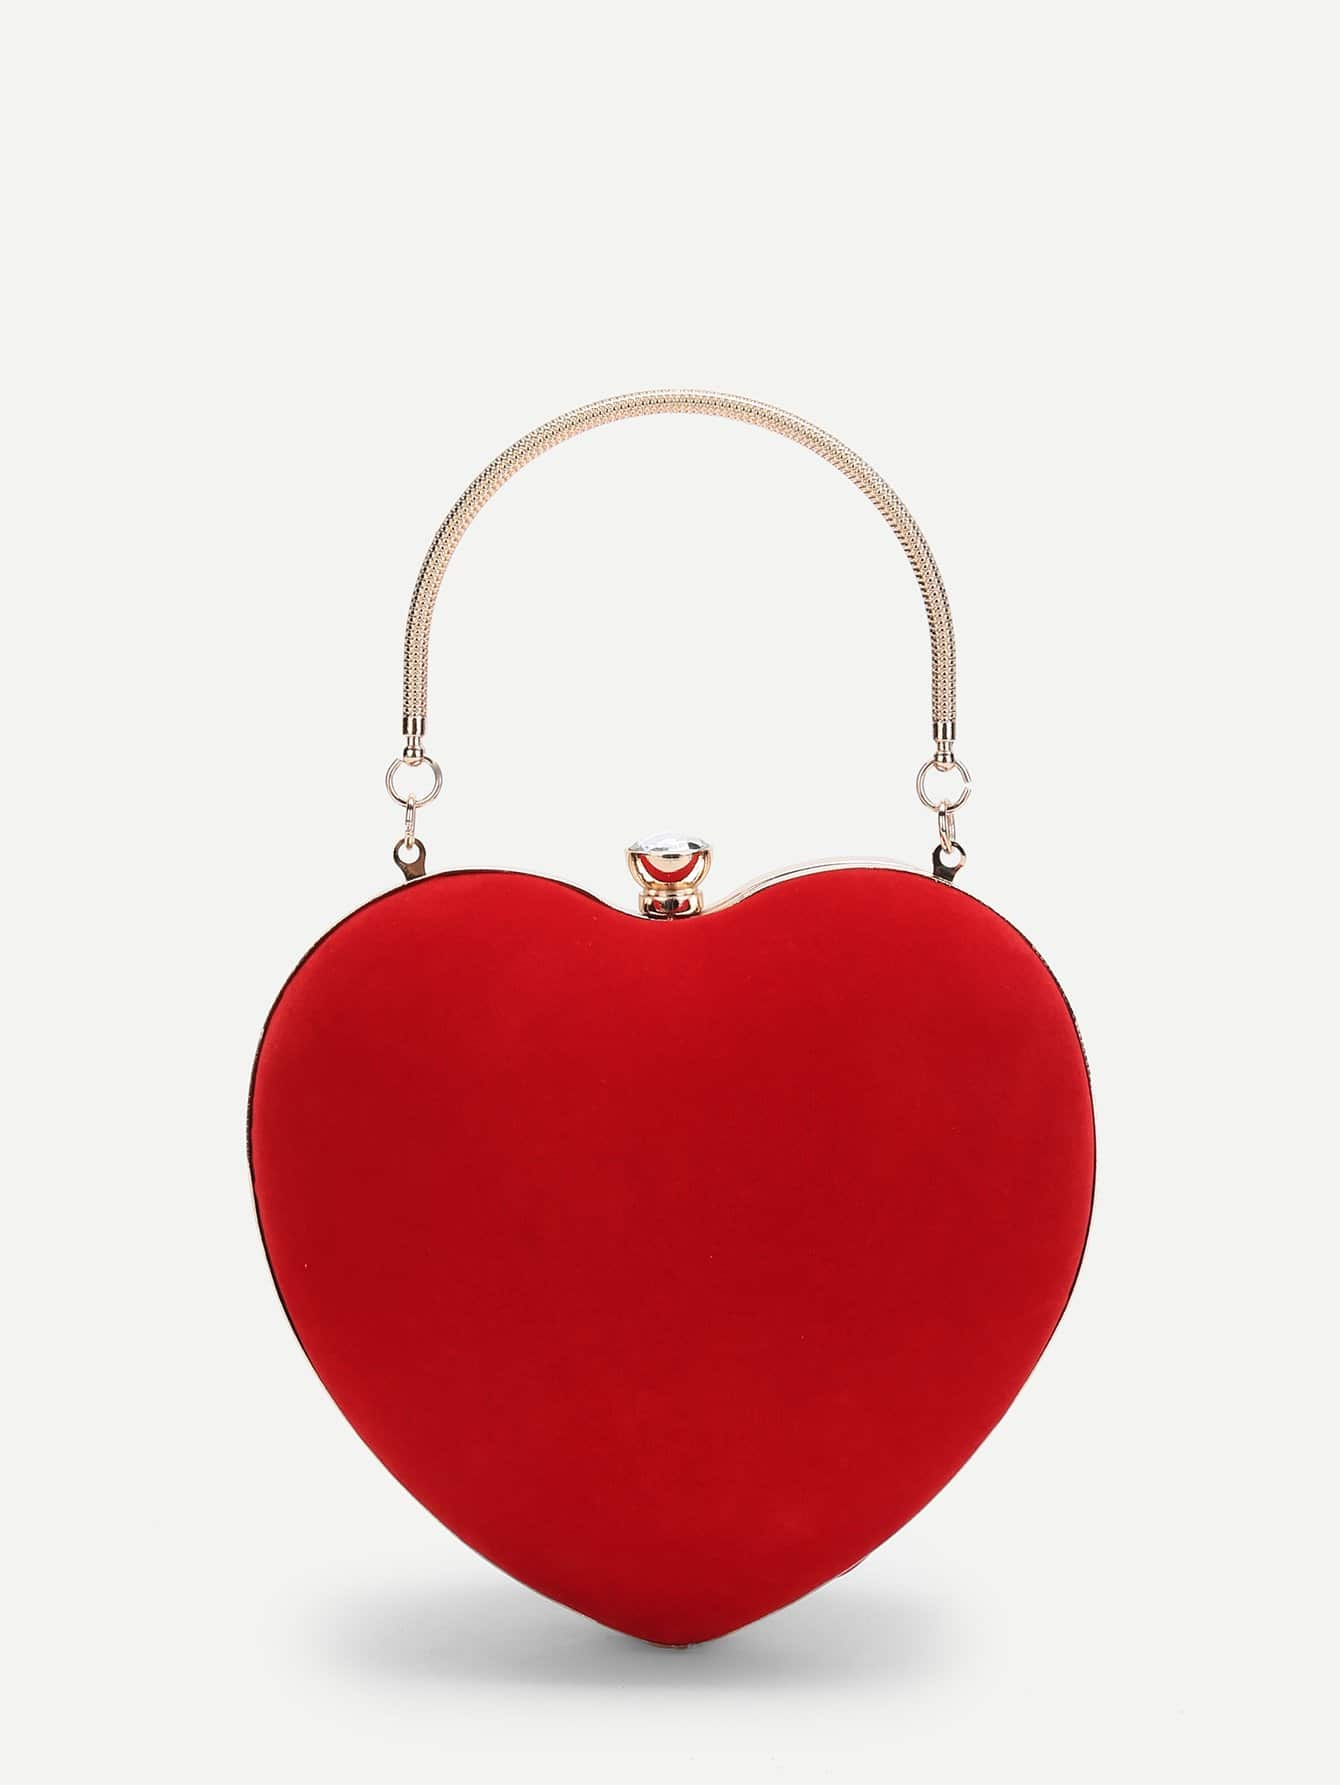 Heart Shaped Clutch Bag With Chain heart shaped decor star chain bag